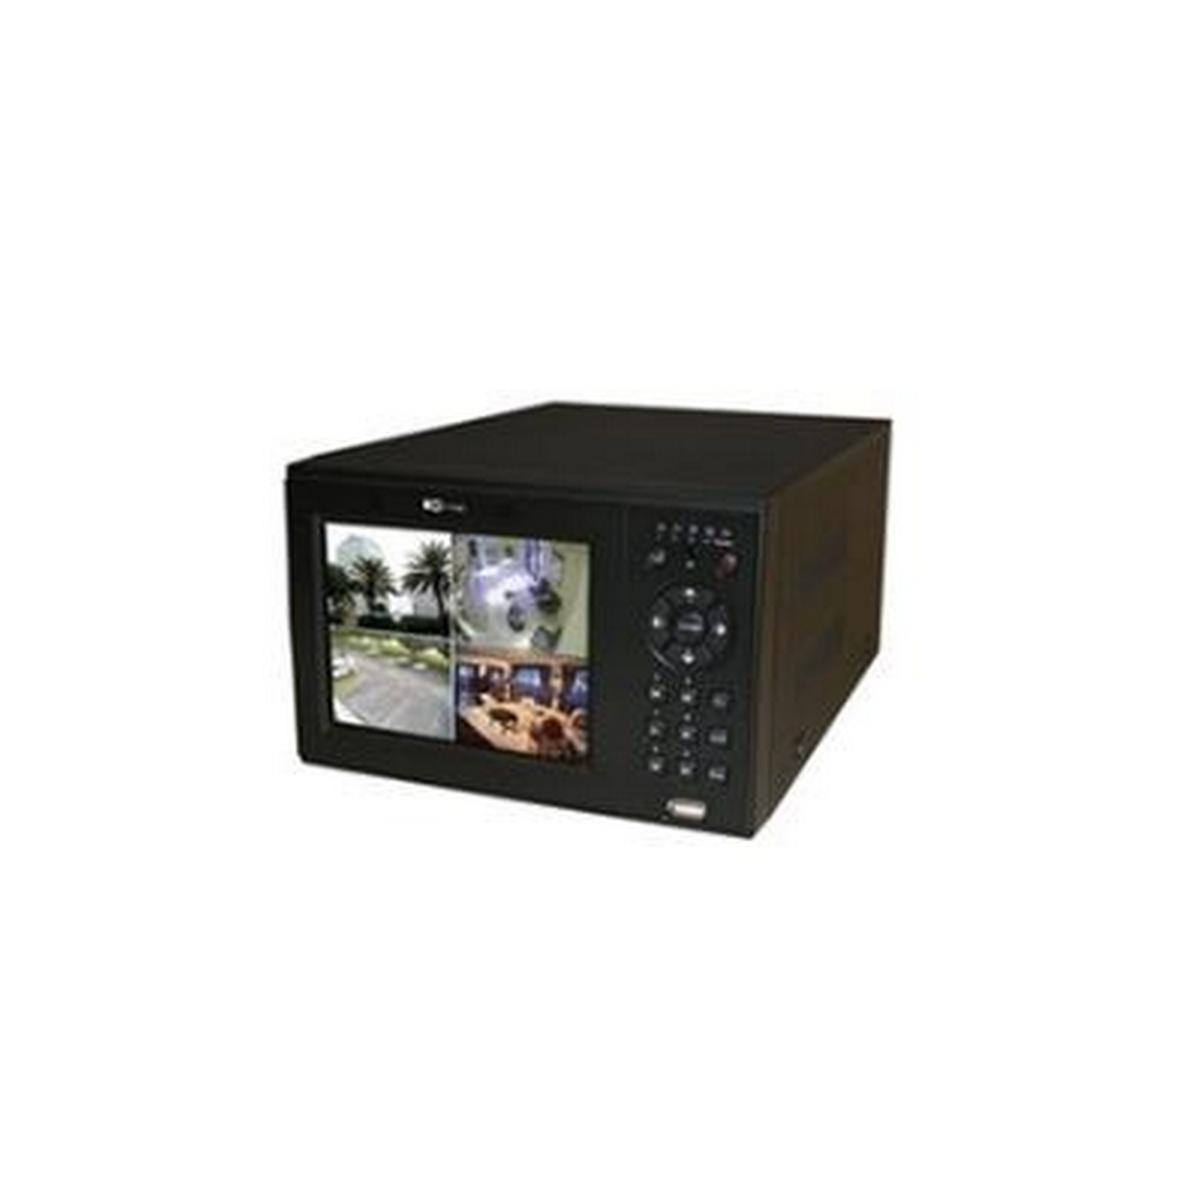 4 CHANNEL DVR - ALL-IN-ONE DVR, FEATURES A 500 GB HARD DRIVE, 120/120 FPS AT CIF UP TO D1 WITH H.264E, PENTAPLEX OPERATION  - NON-RACKMOUNT